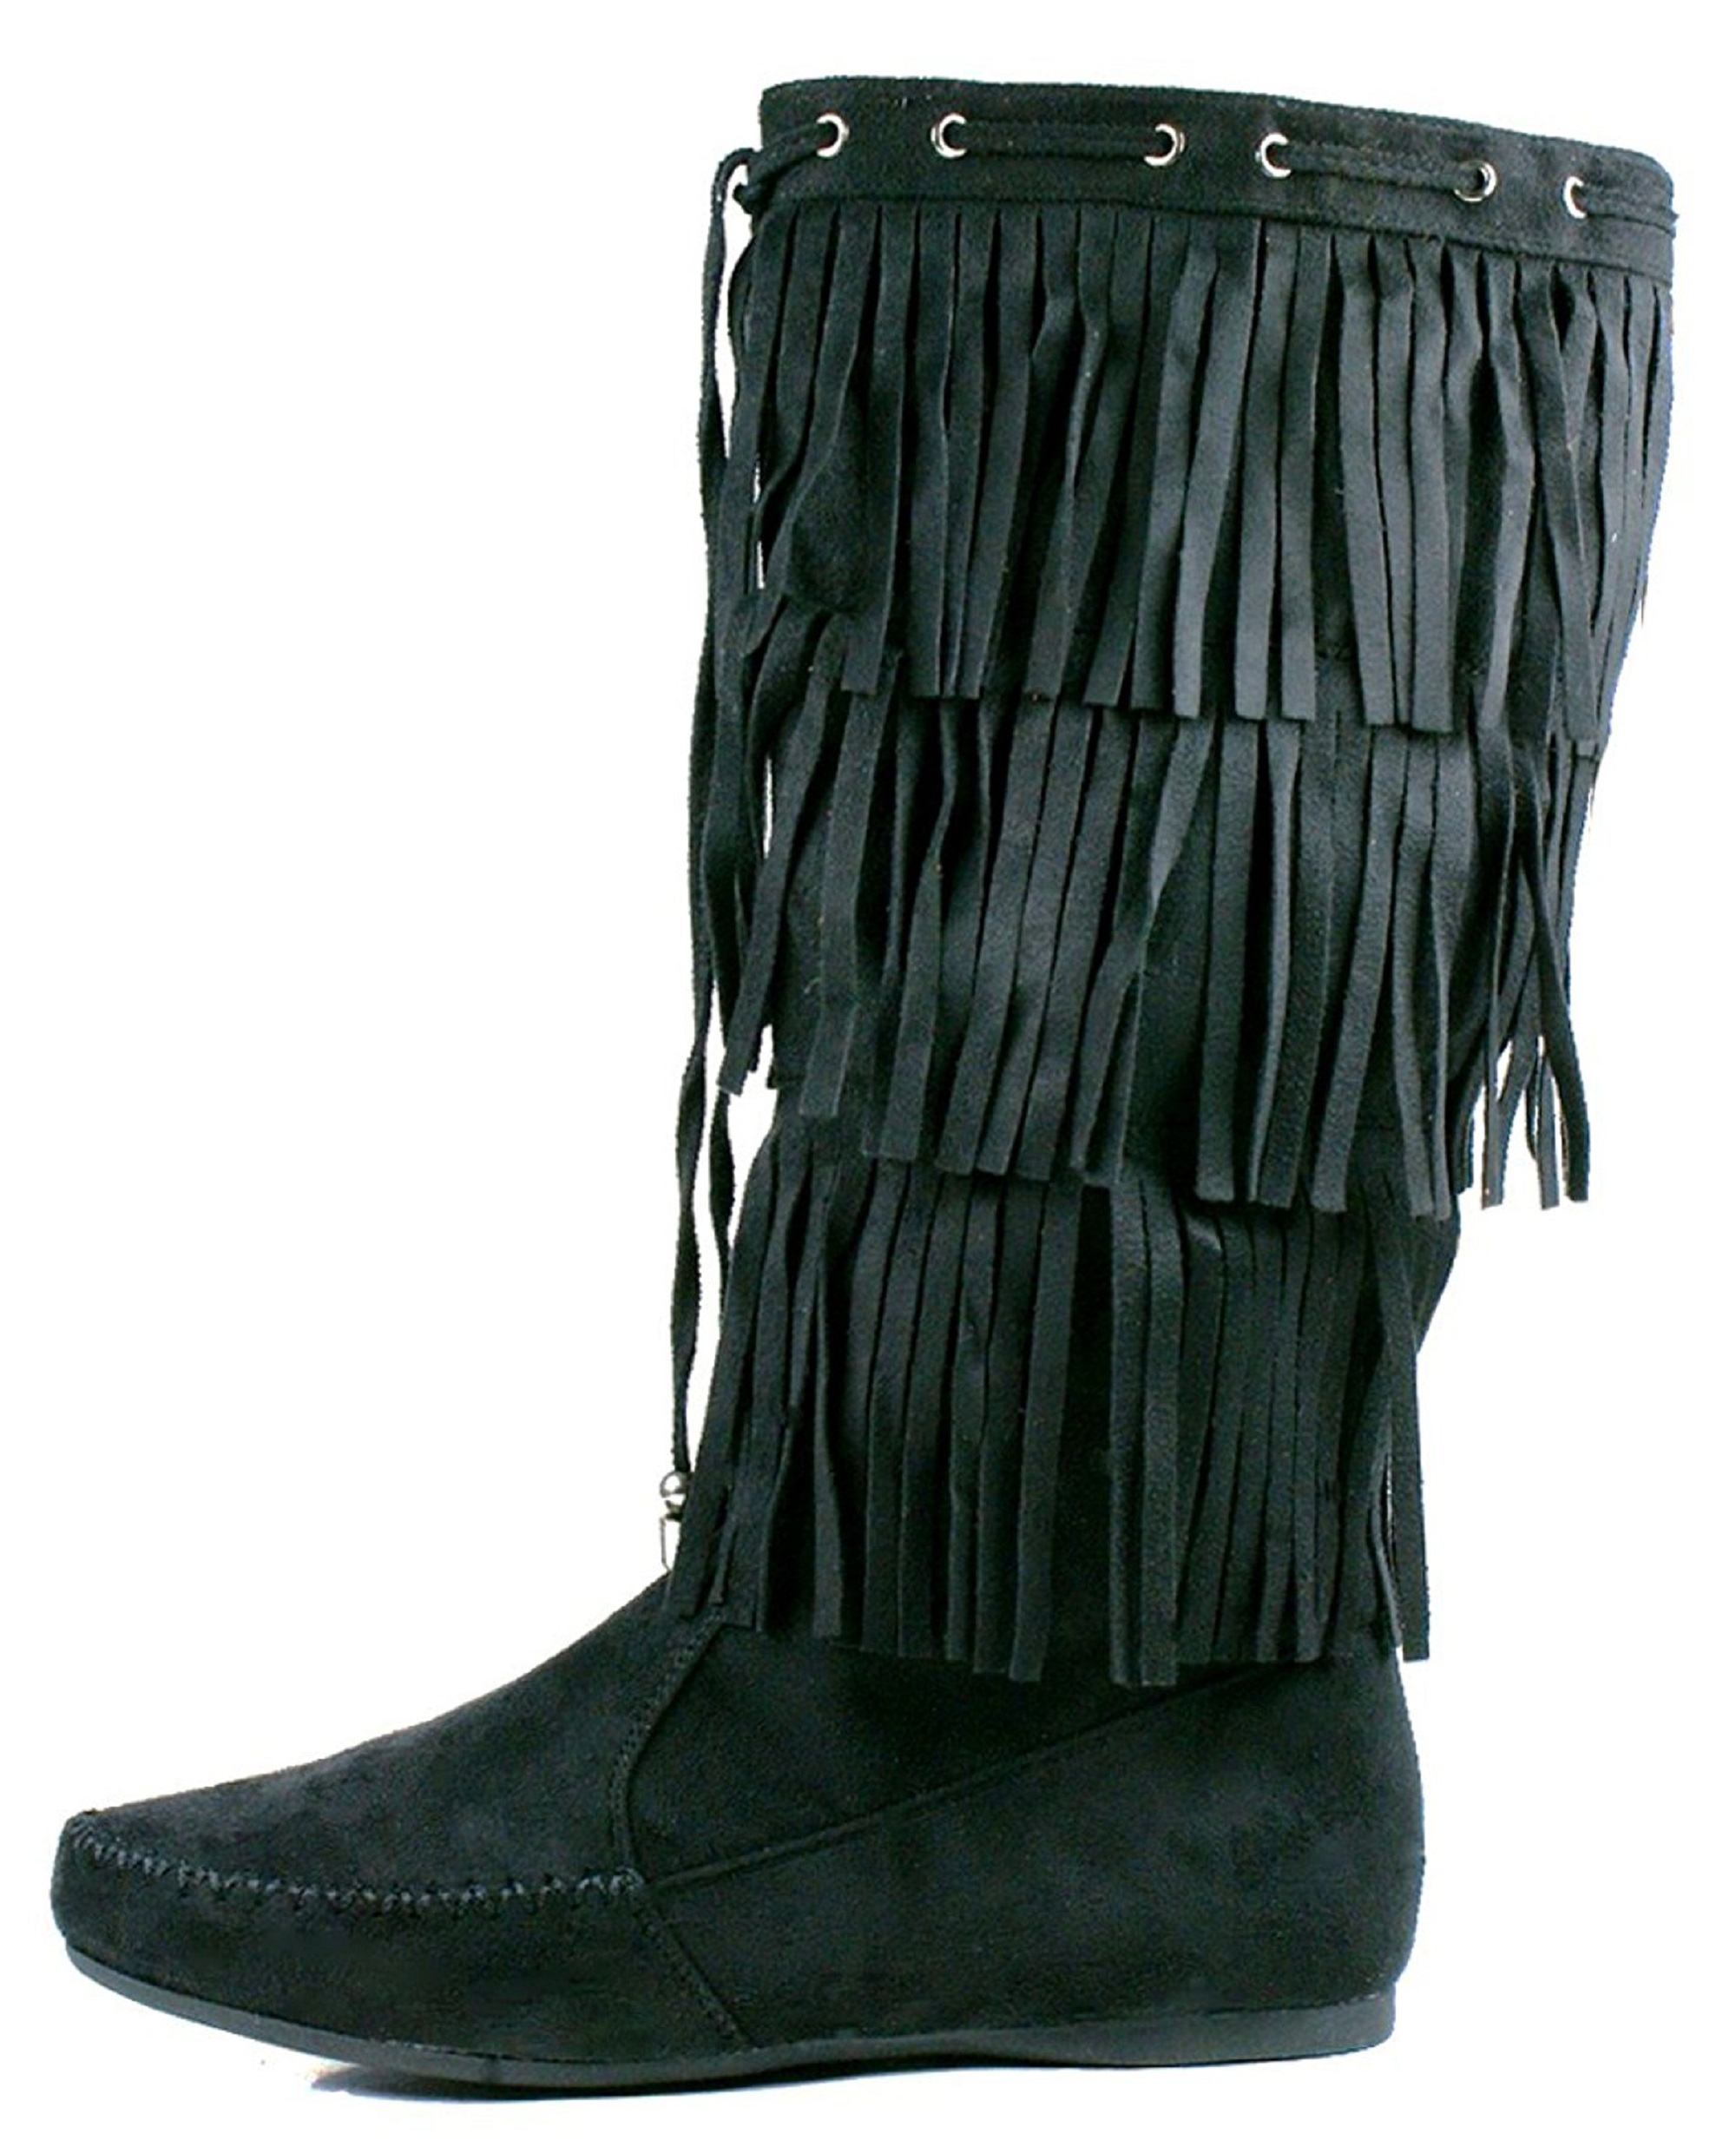 4da7e9711 Womens Fringe Boots Faux Suede Moccasin Mid Calf Flat New Size 3 Tier Layer